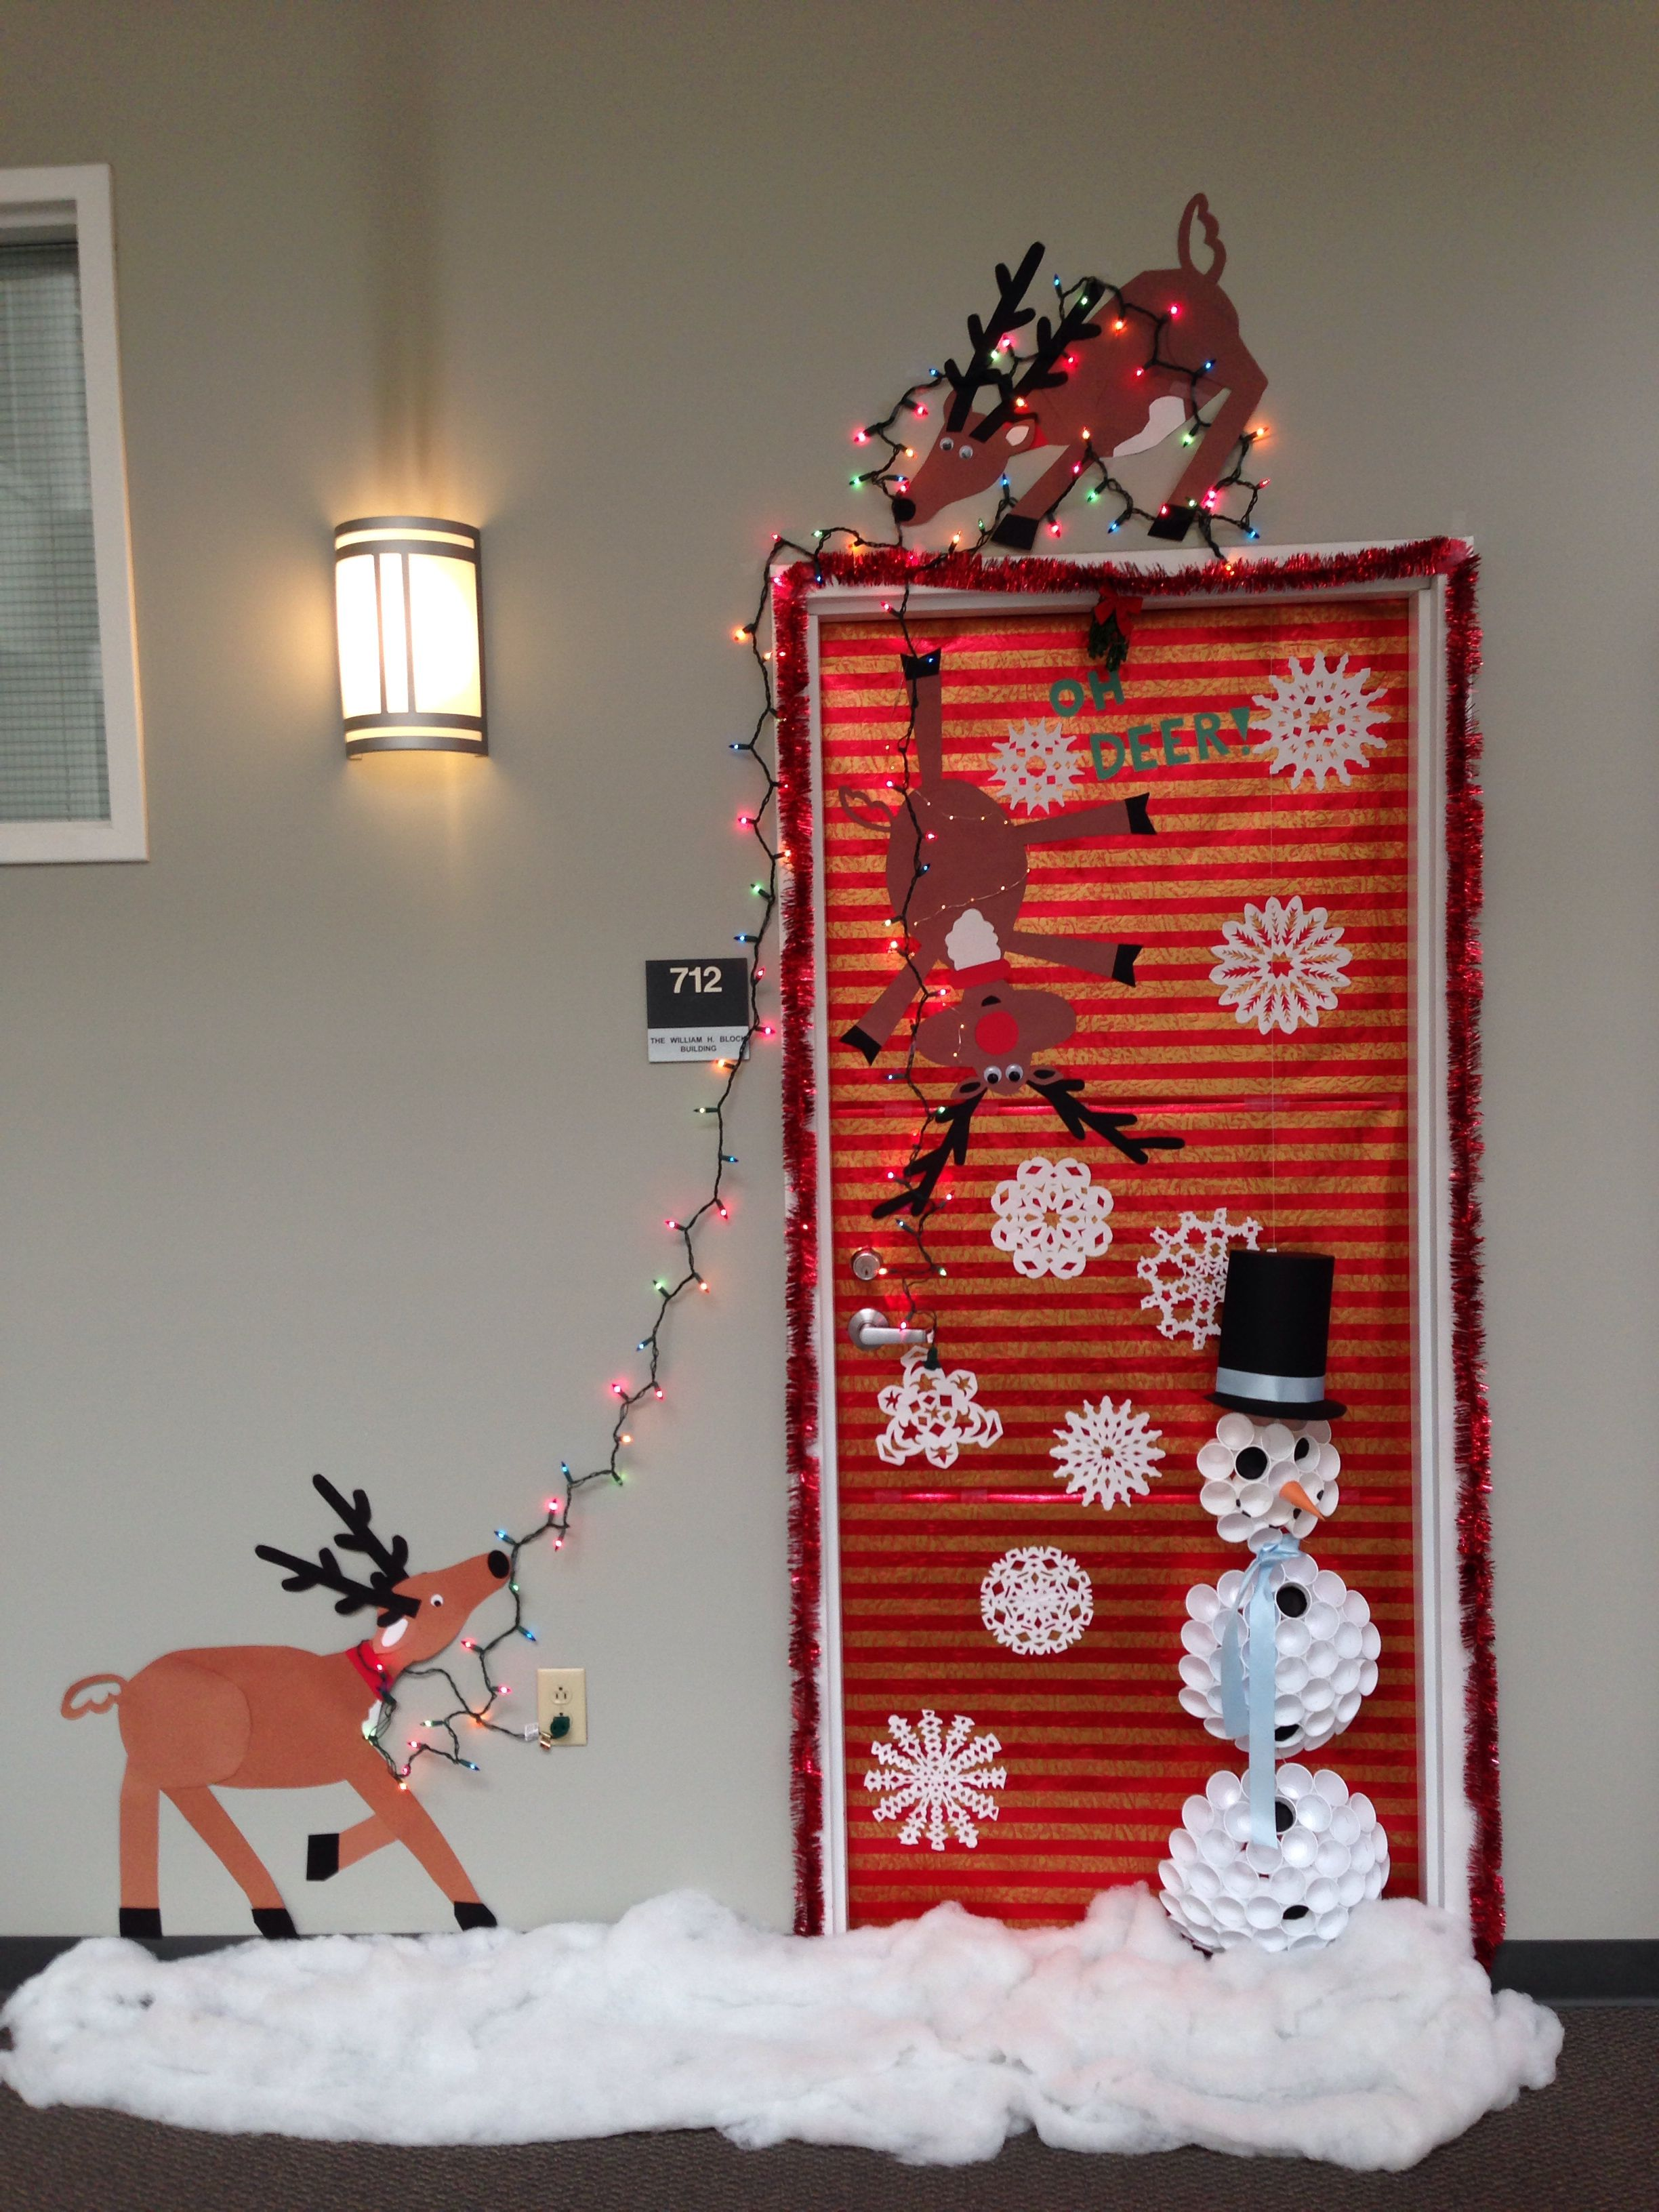 Our Christmas door decoration -- FIRST PLACE!! Made snowman with ...